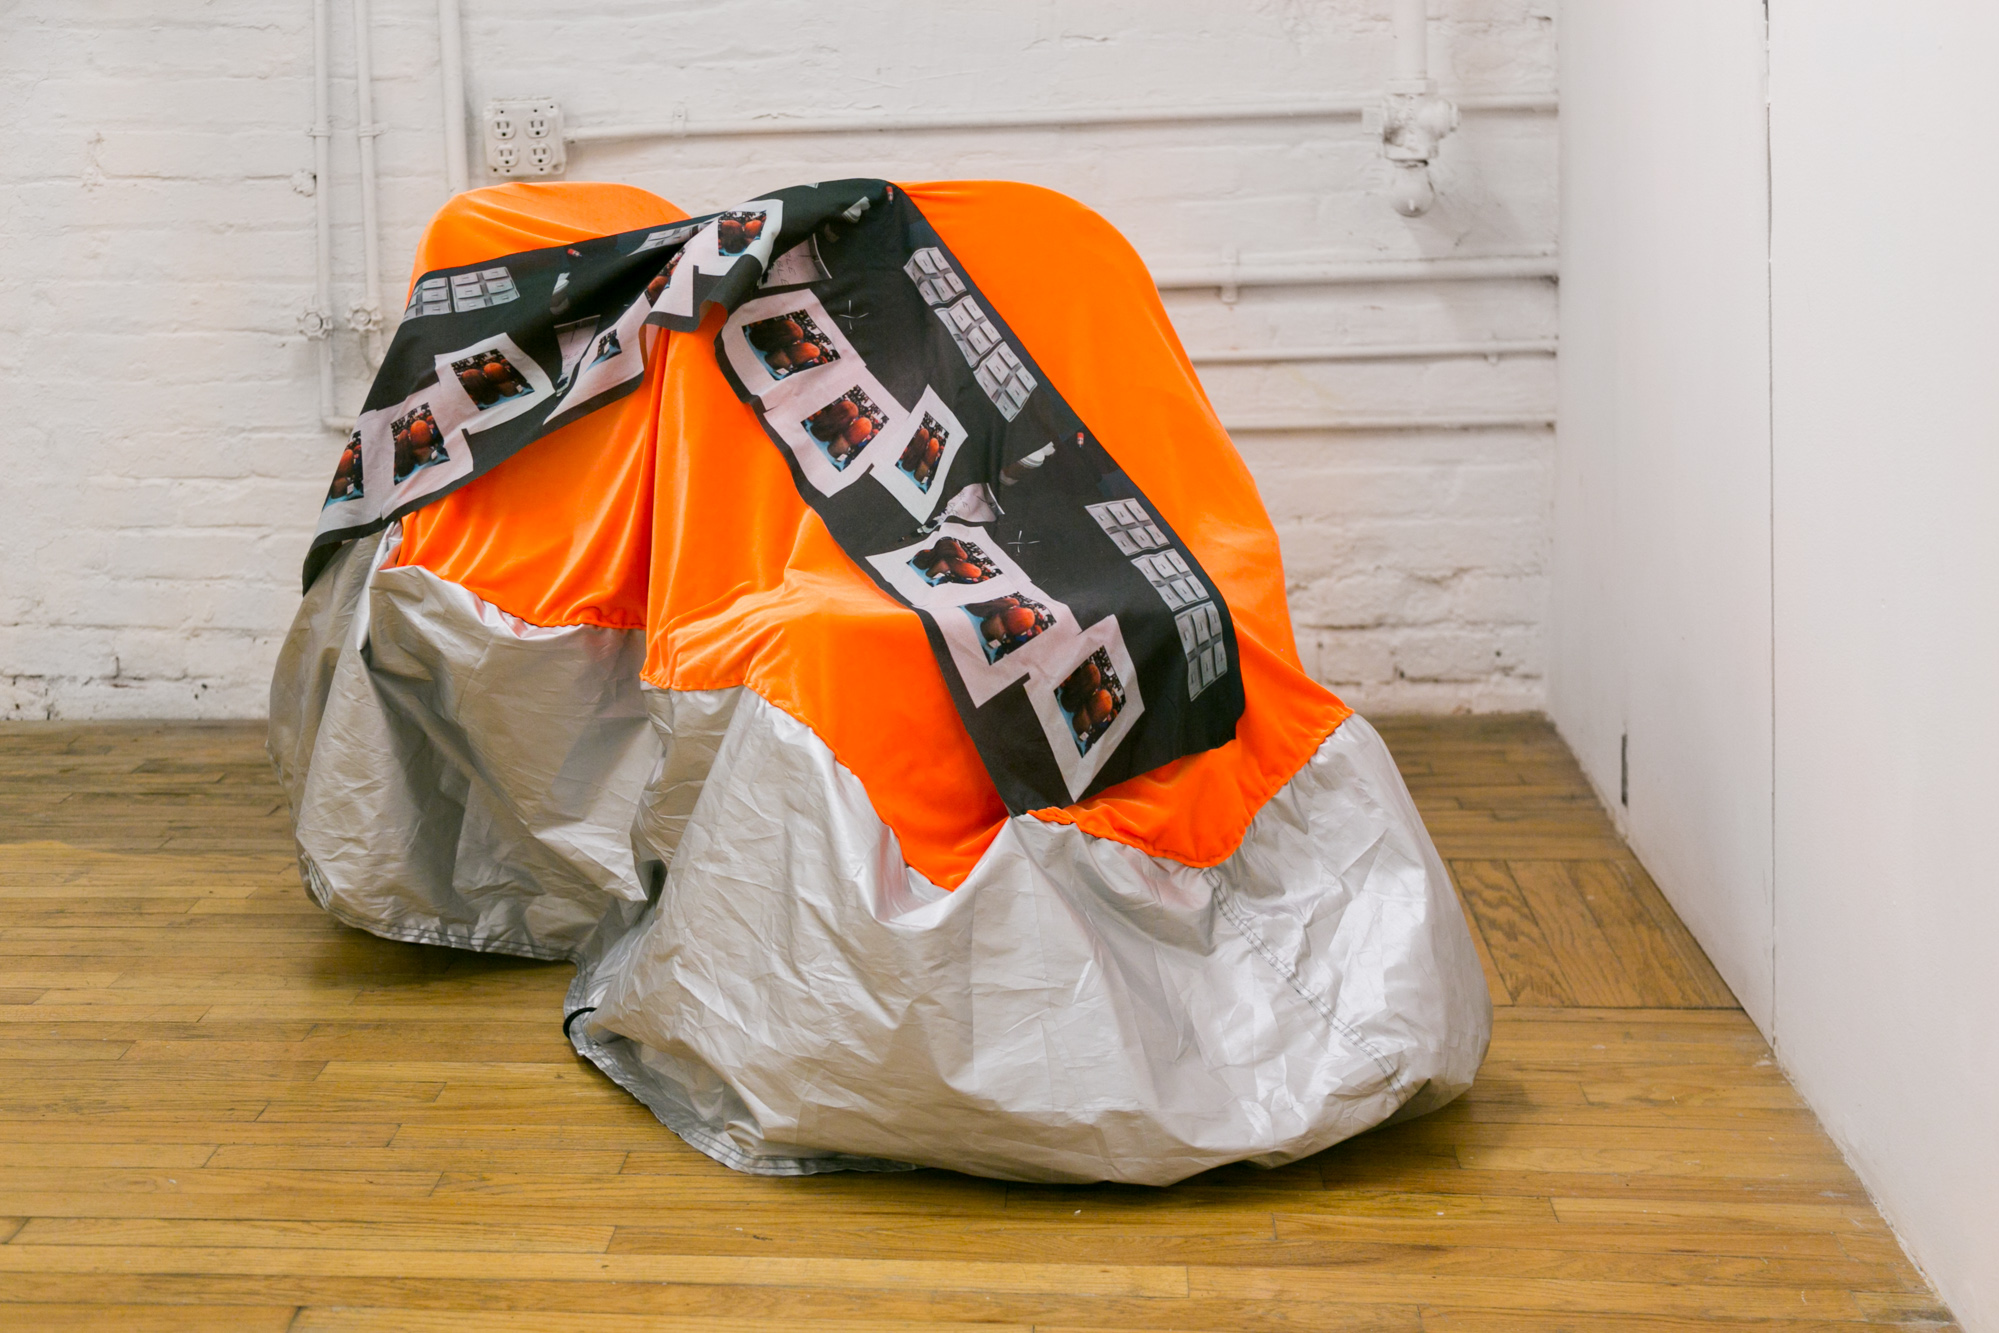 Laura Hunt,  Motorcycle Cover 2 , 2018, custom printed cotton, velvet, and altered motorcycle cover with hand-sewing, approximately 60 x 36 inches, dimensions variable. Installation view, Laura Hunt,  Motorcycle Covers , 2018, 321 Gallery, Brooklyn, NY.